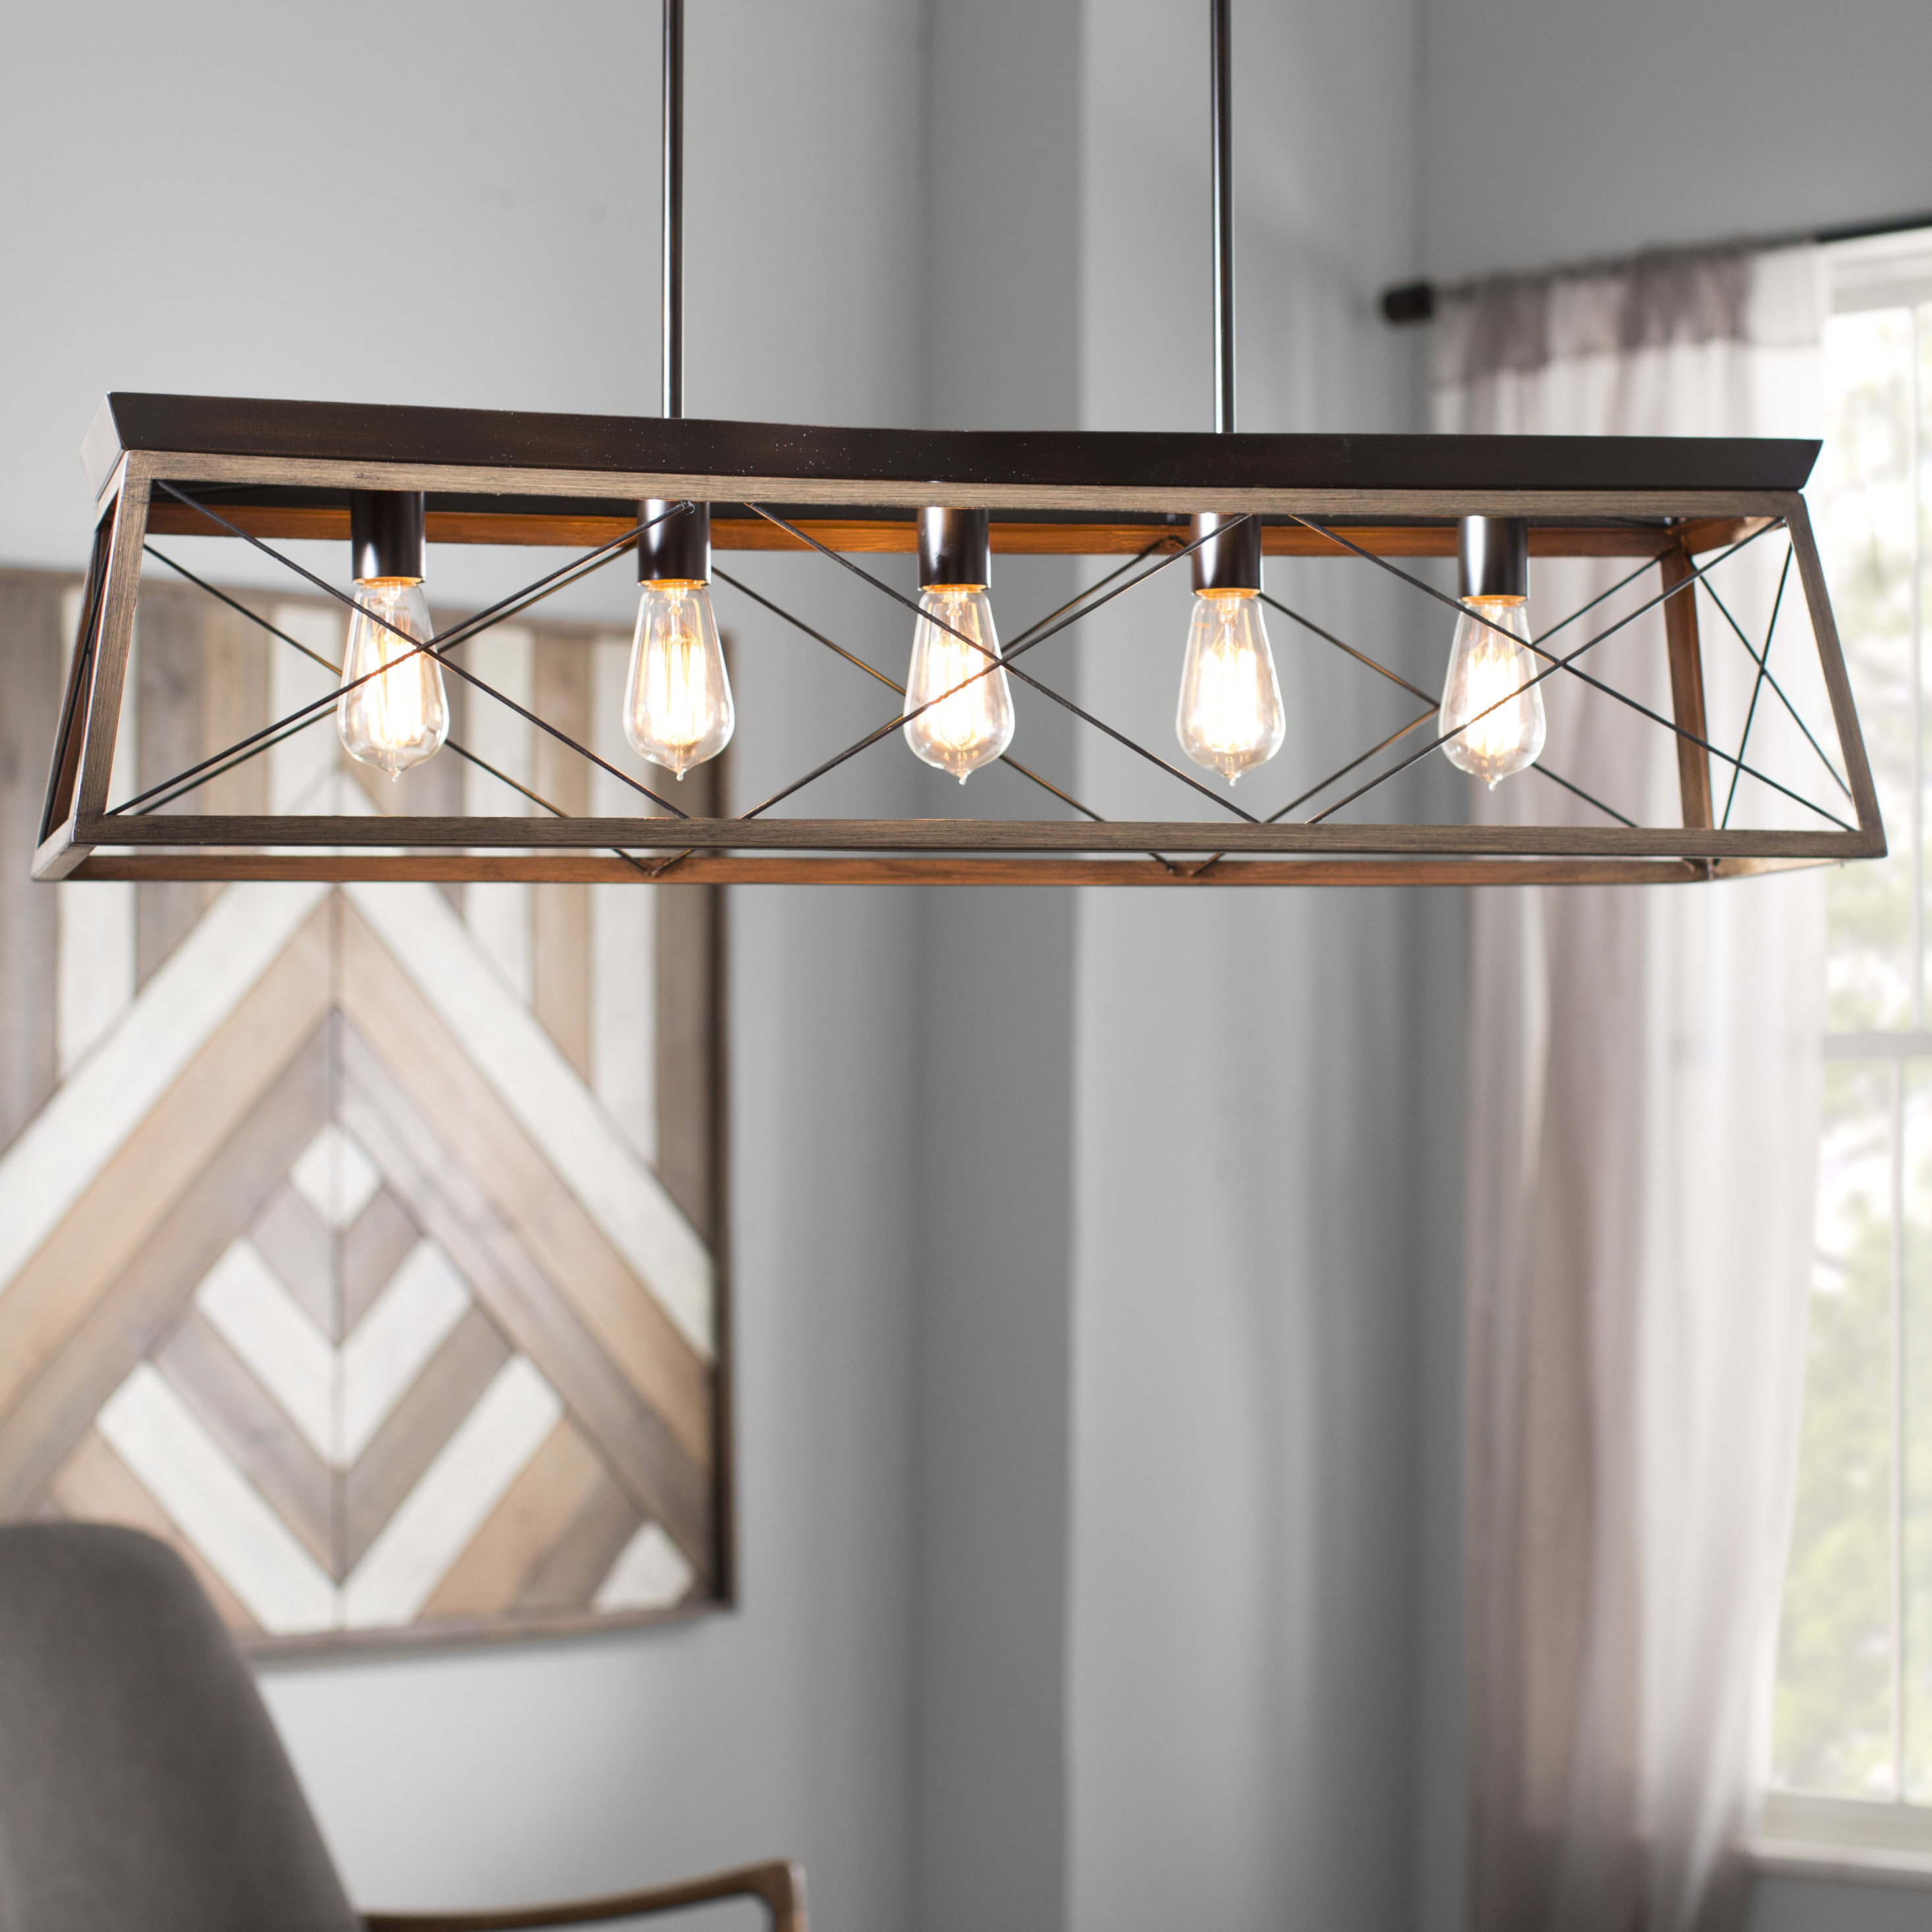 Widely Used Farmhouse Kitchen Lighting (View 24 of 25)